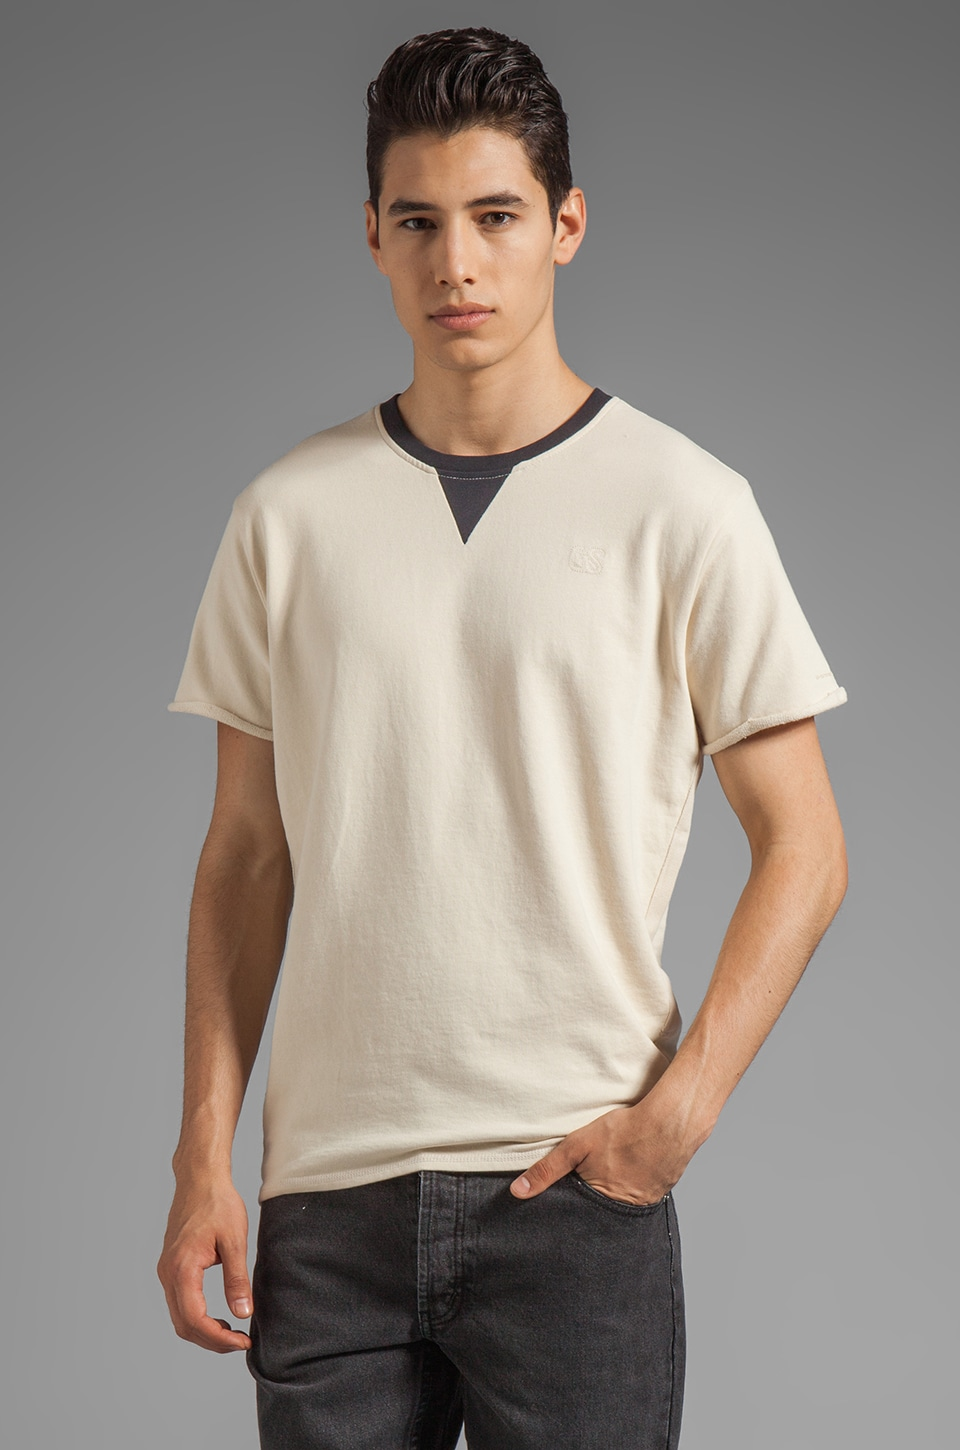 G-Star Boot Short Sleeve Sweatshirt in Chalk